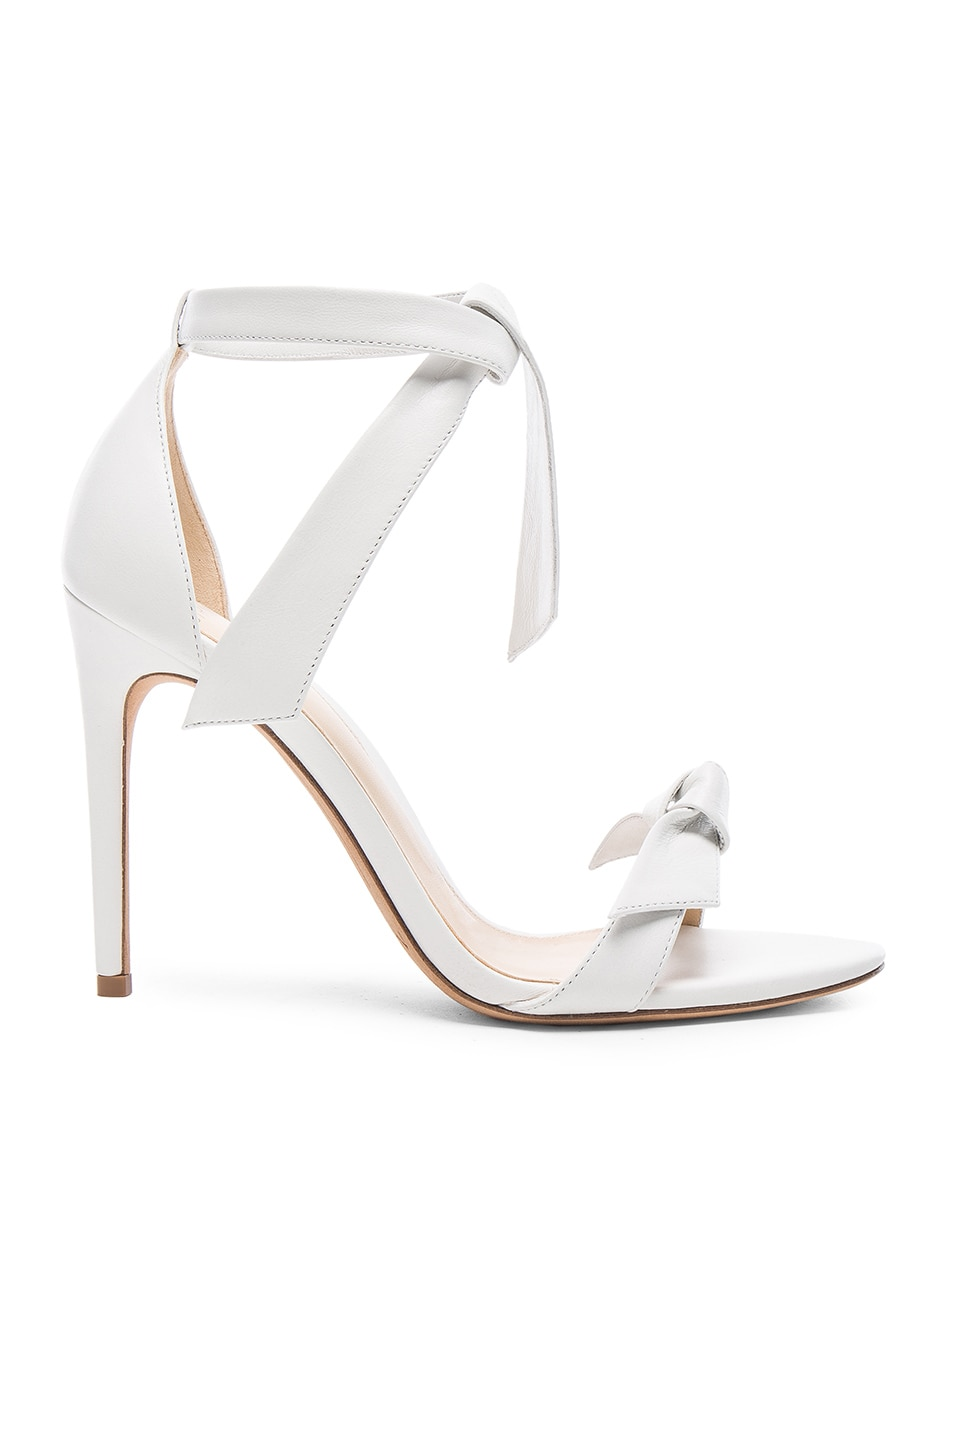 Image 1 of Alexandre Birman Clarita Sandals in White